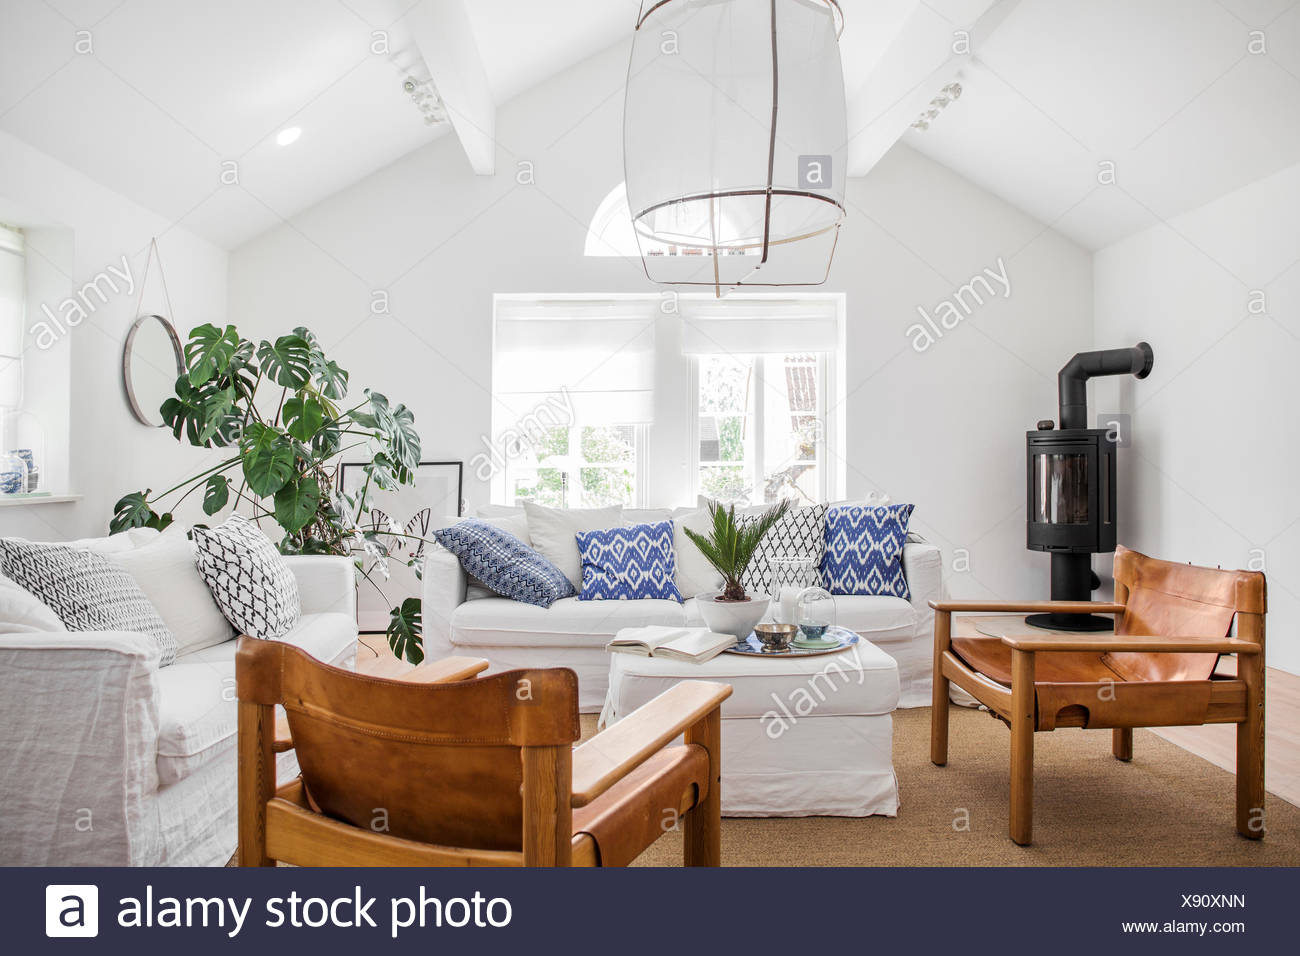 Sweden, Living Room With White Sofas And Wooden Chairs